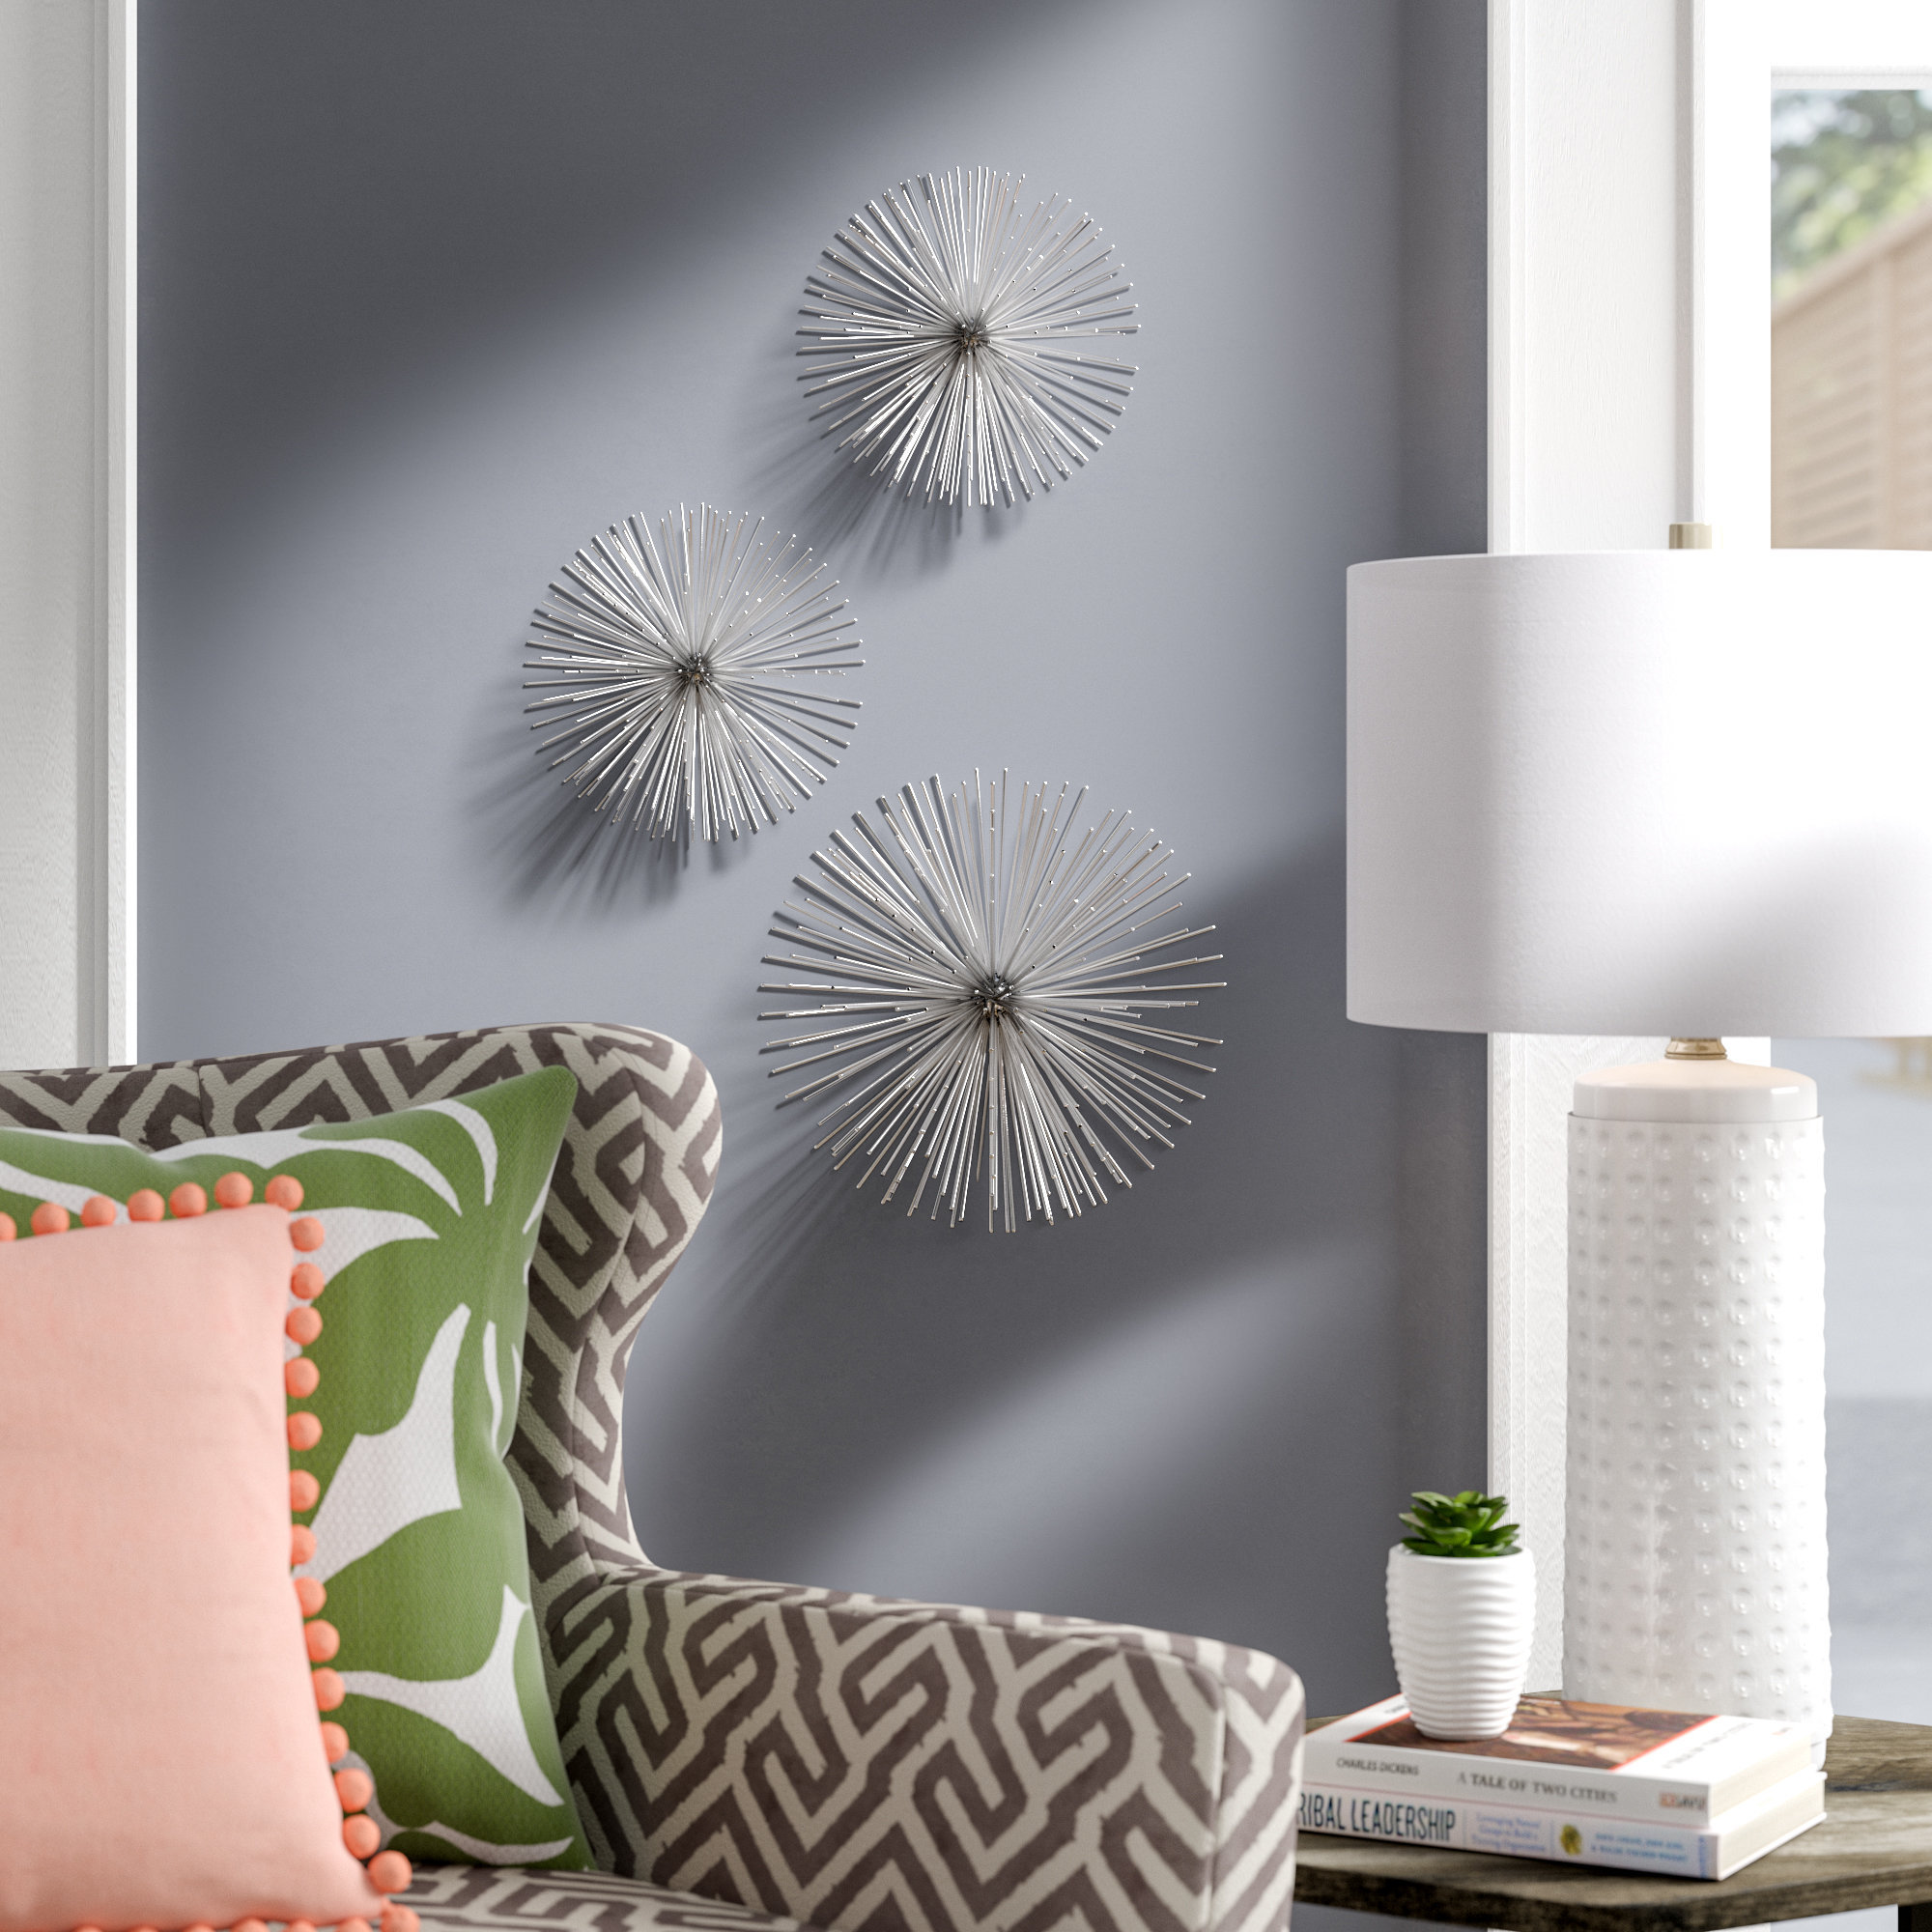 Alvarez Starburst Wall Décor throughout 3 Piece Wall Decor Sets by Wrought Studio (Image 21 of 30)